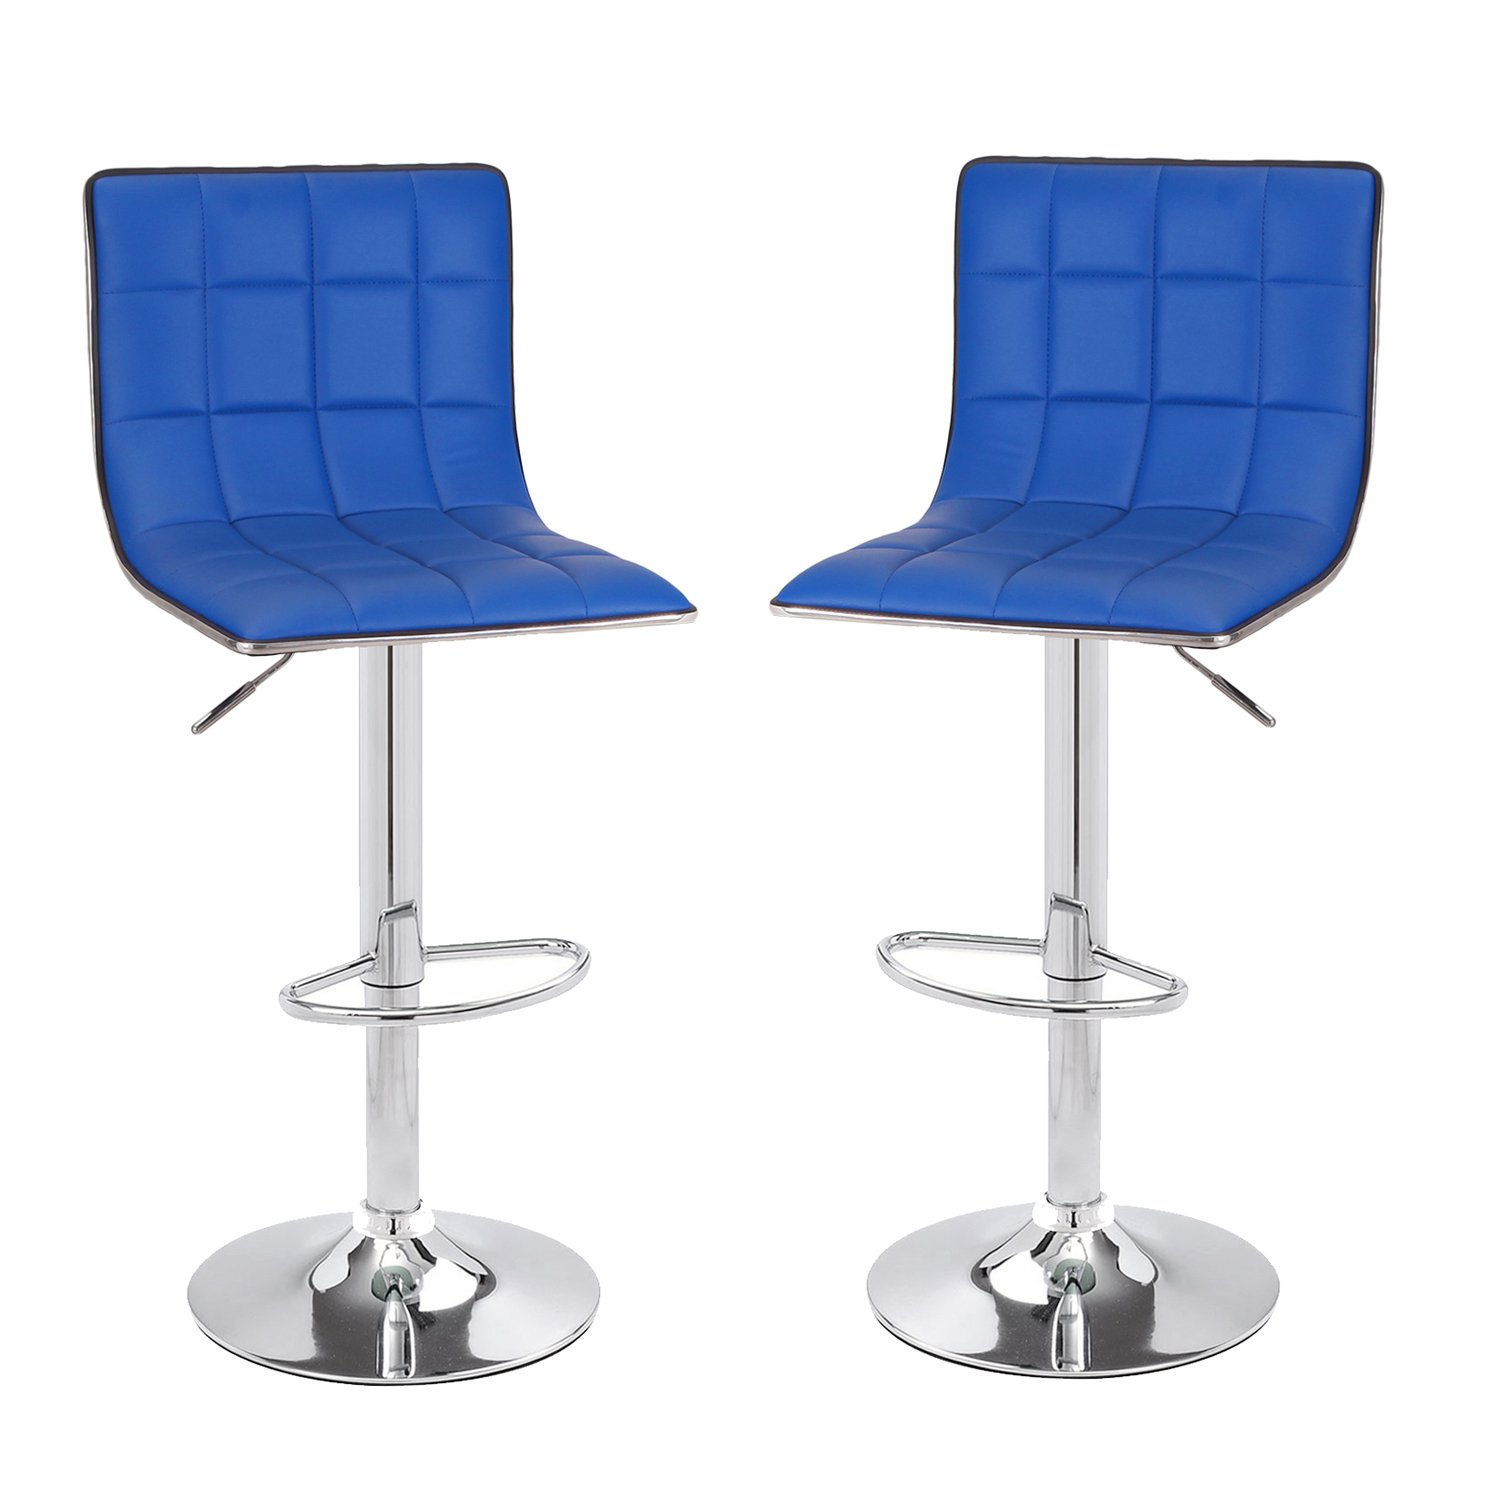 Asense Leather Hydraulic Adjustable Barstool Chair with Footrest & Chrome Metal Base (Set of 2) (Blue)